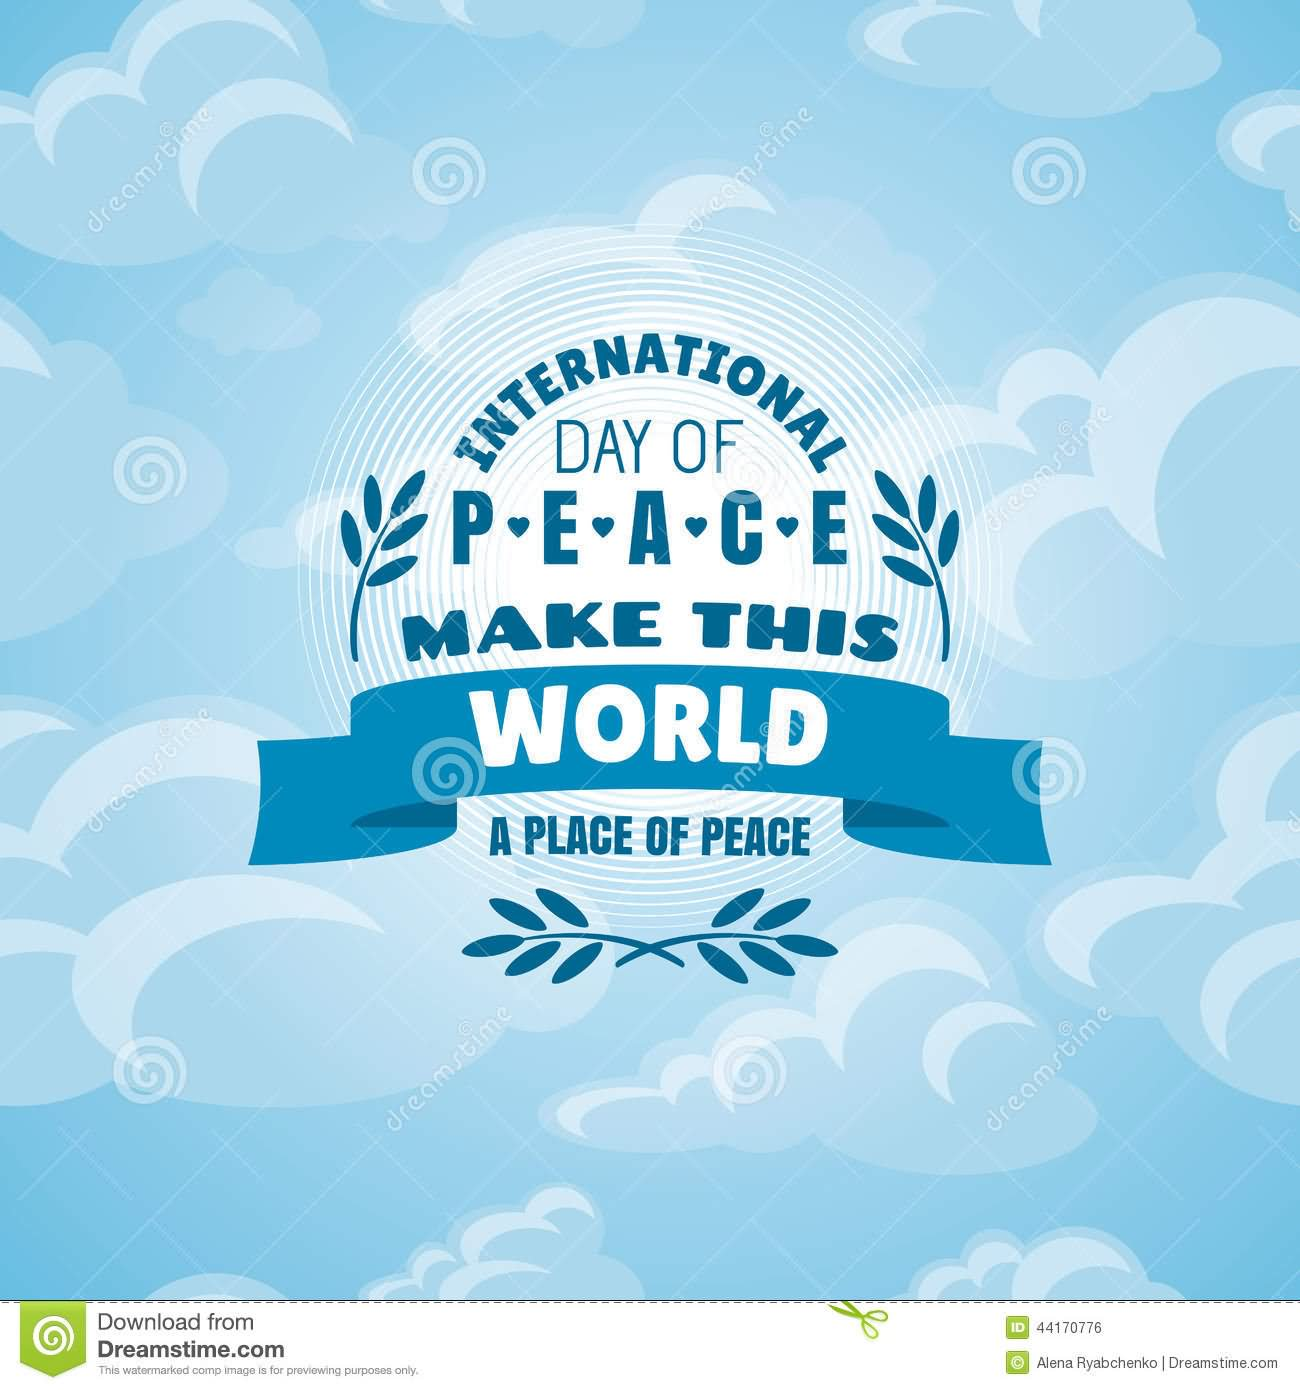 Congratulations on World Peace Day (World Prayer Day for Peace) 82